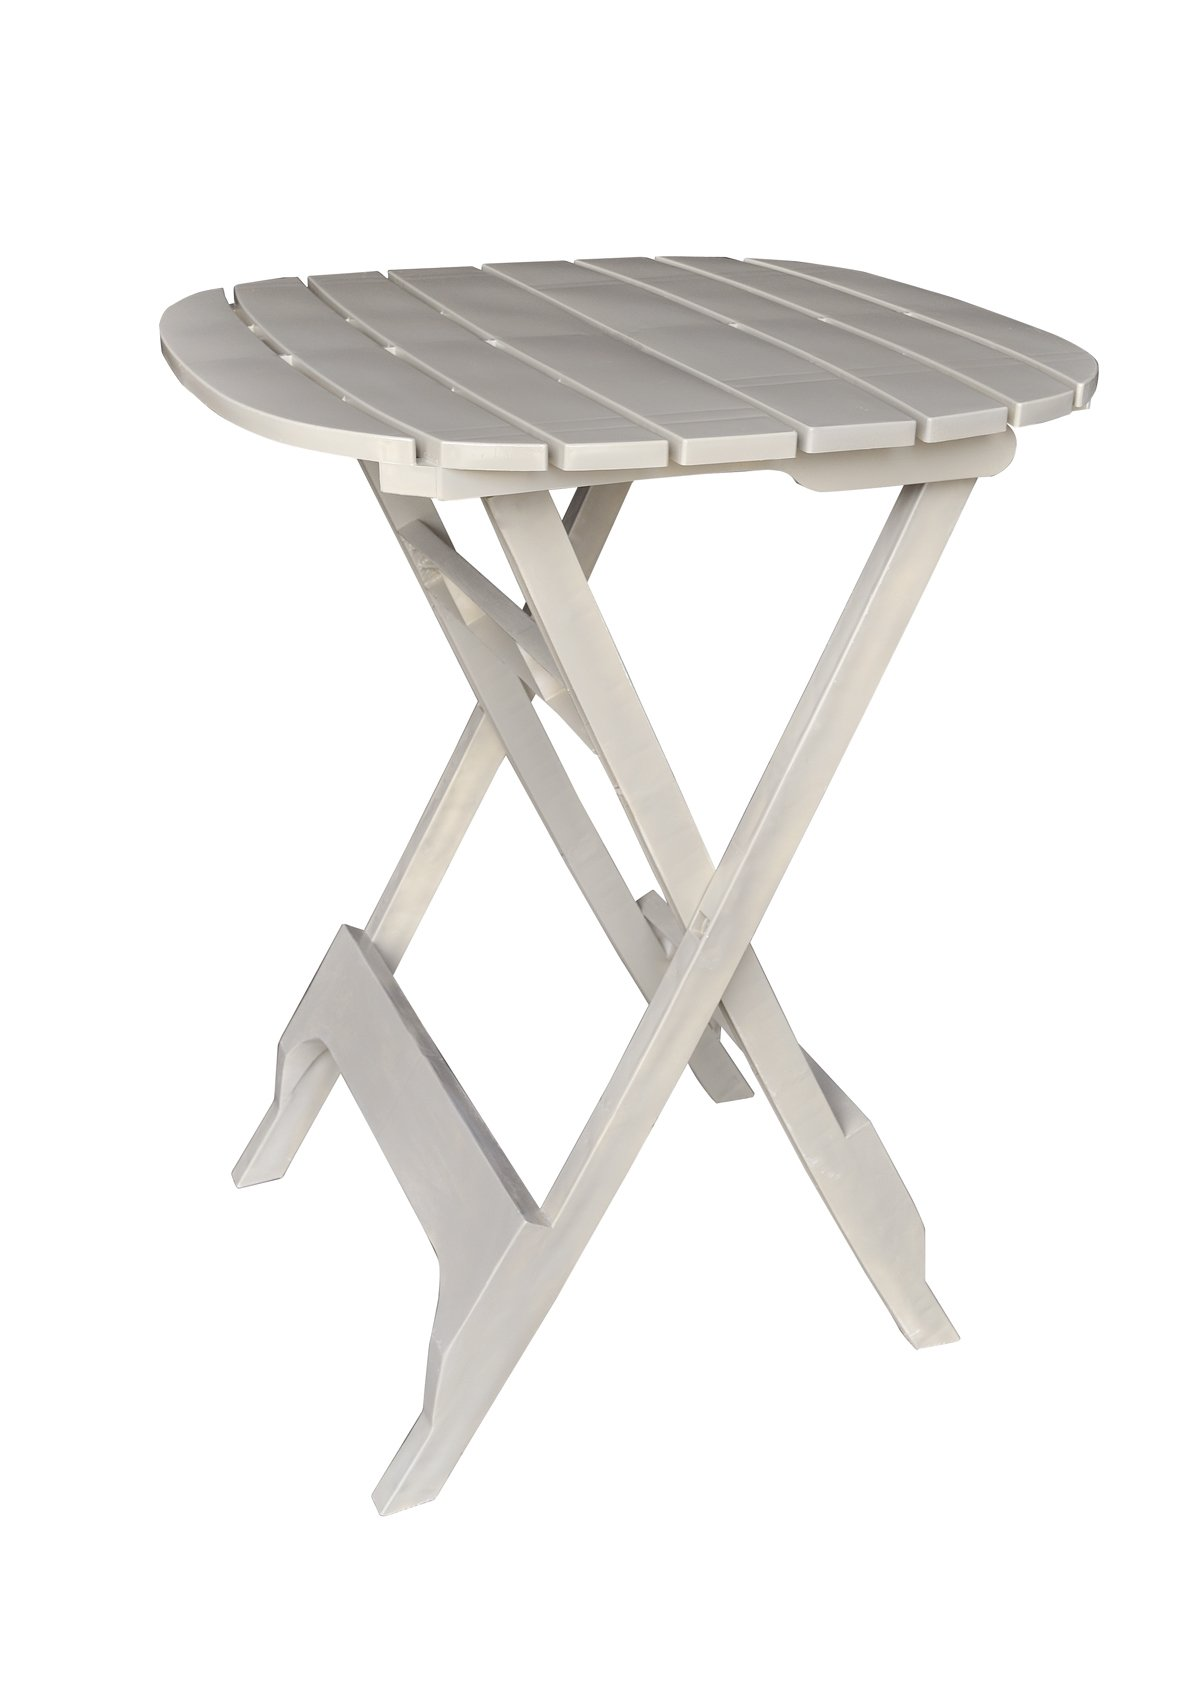 Adams Manufacturing 8560-23-3701 Quik-Fold Bistro Table, 40-Inch, Desert Clay